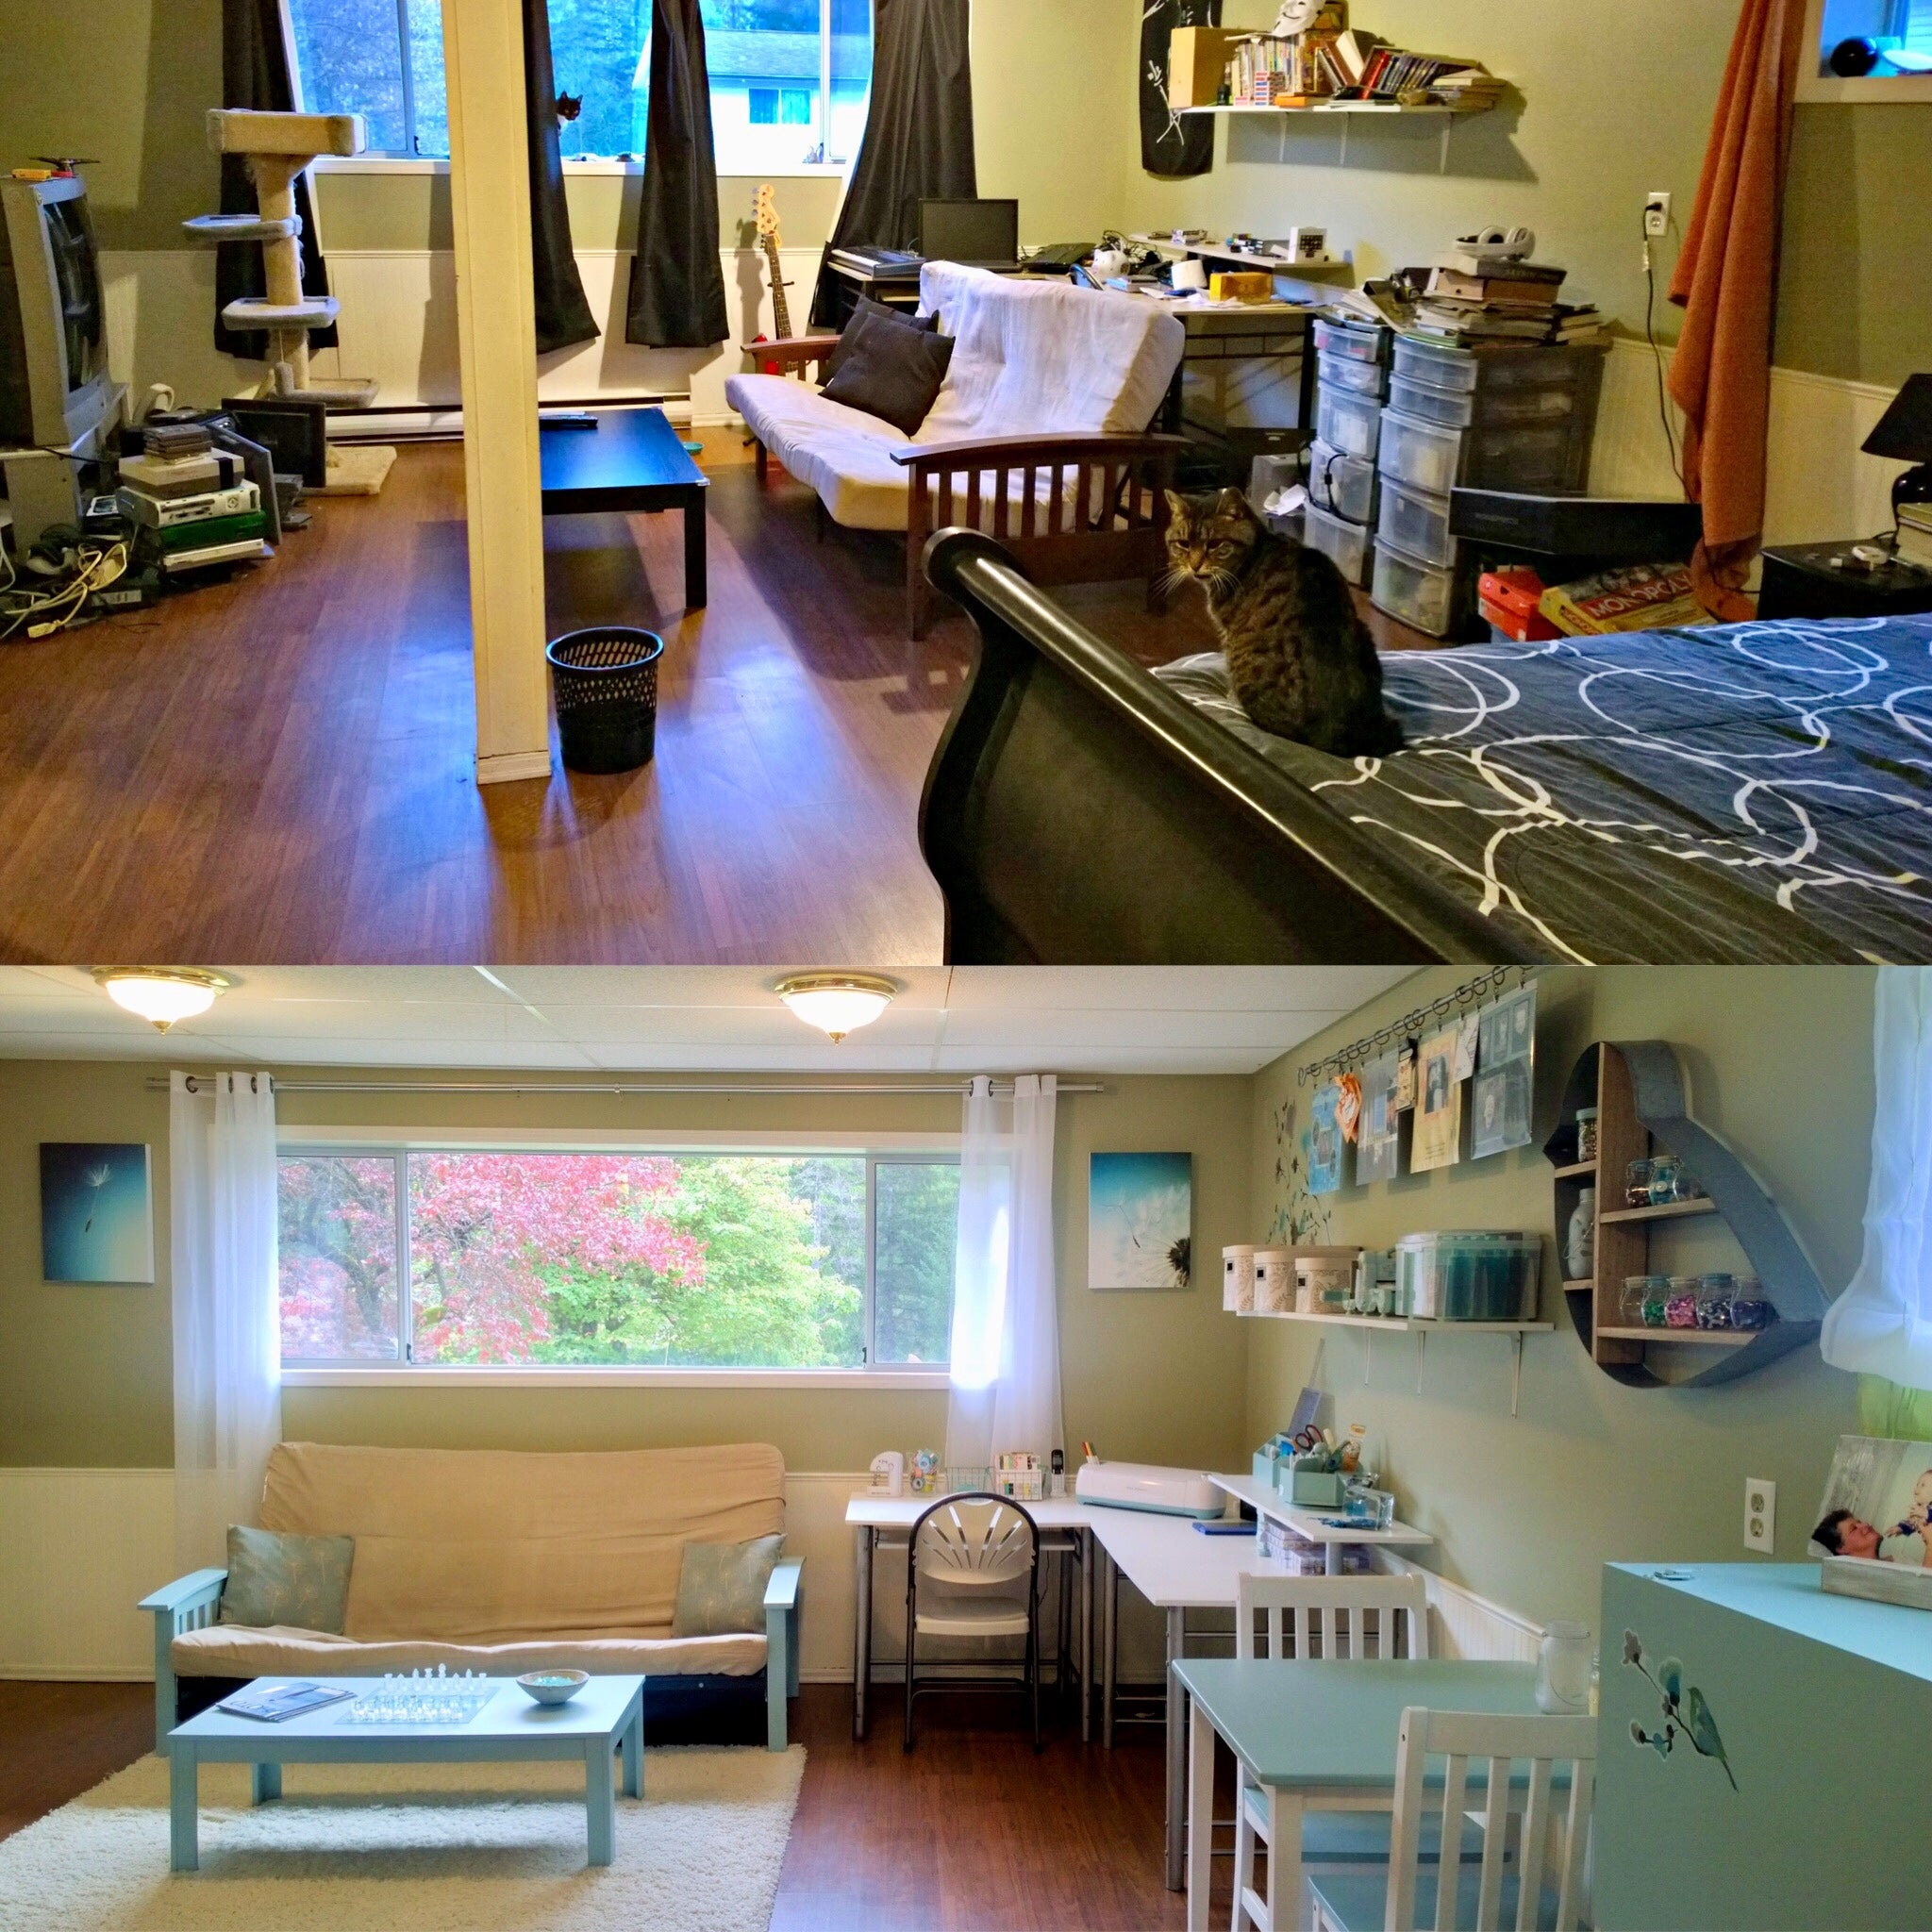 Room makeover transformation from teen bedroom to spare bedroom craft room before and after photos